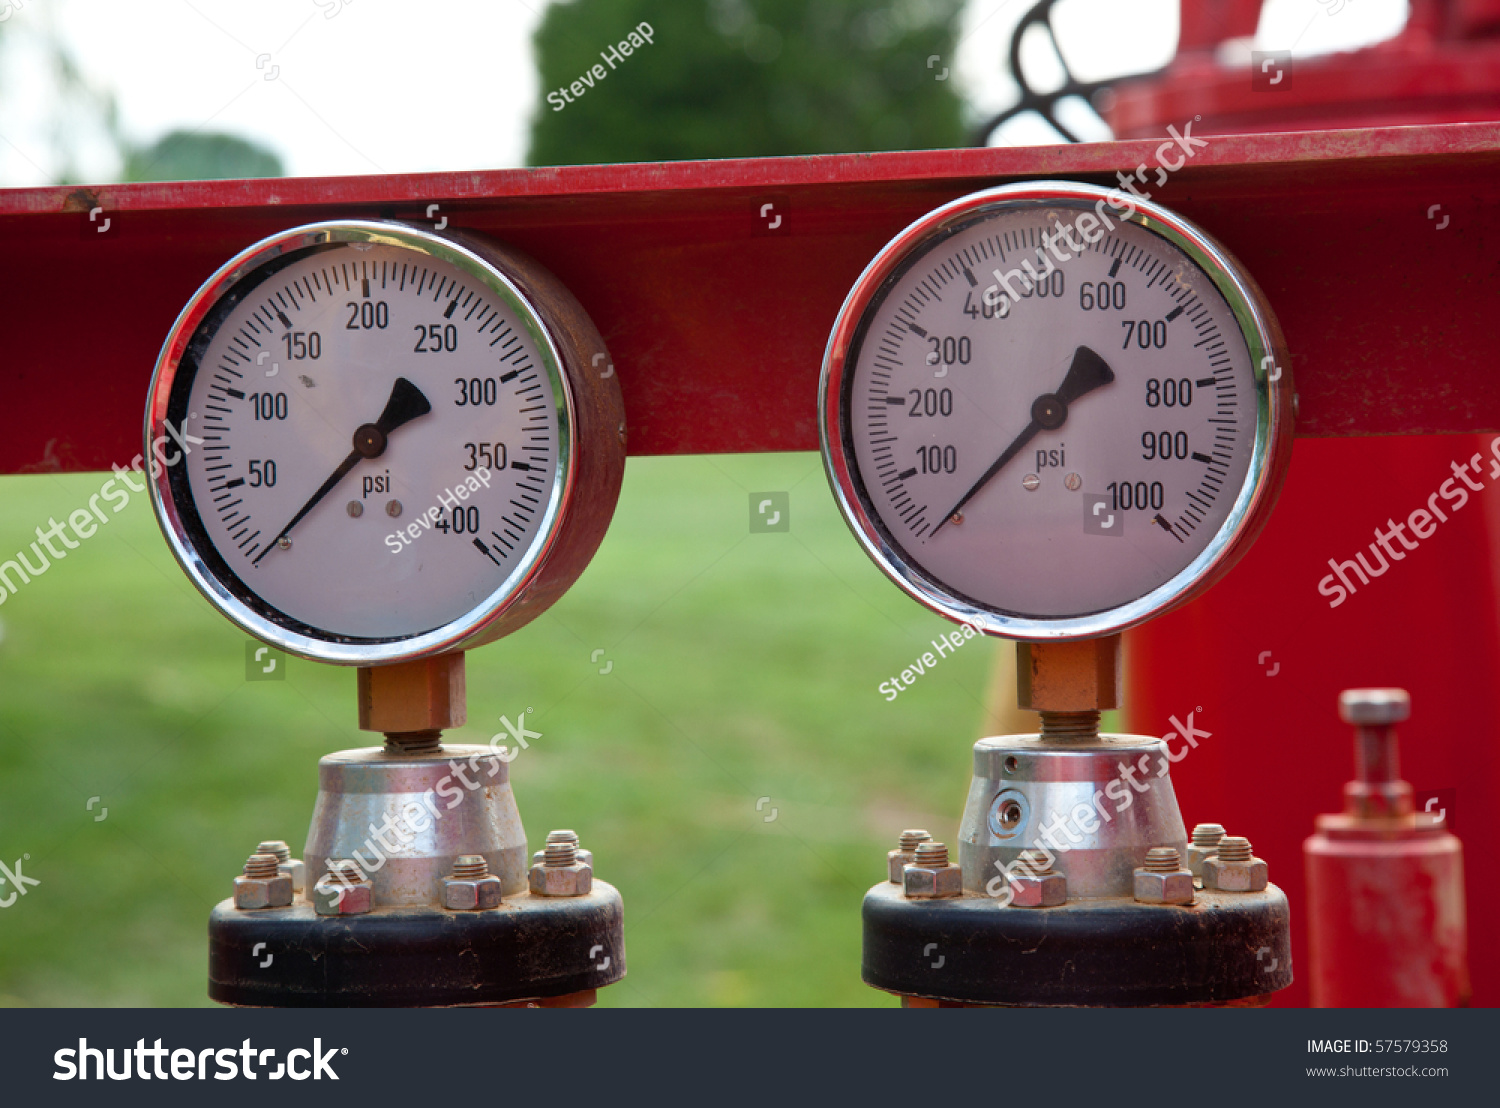 Heavy Equipment Gauges : Two similar pressure gauges on heavy equipment stock photo